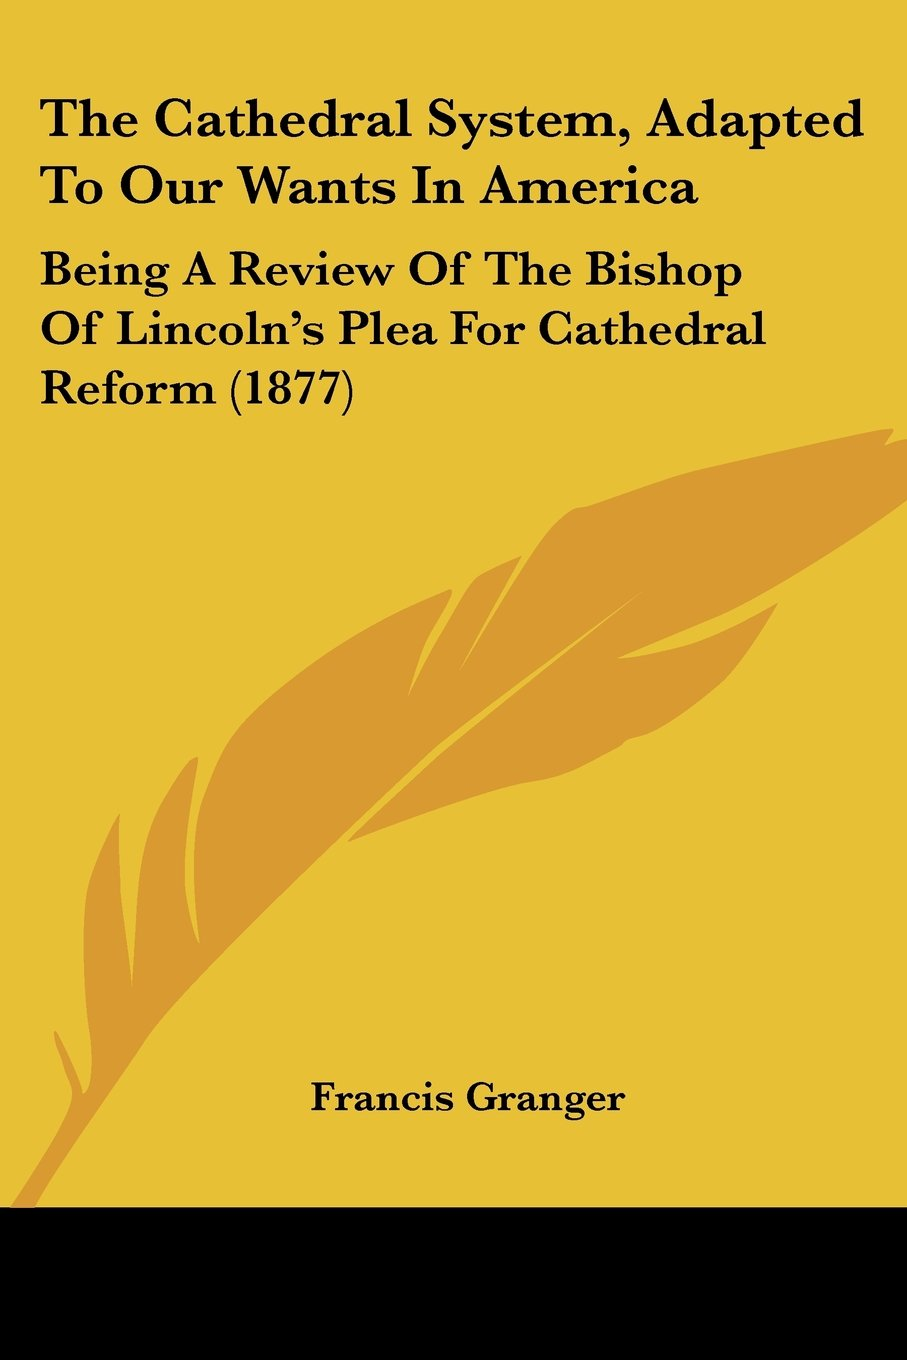 Download The Cathedral System, Adapted To Our Wants In America: Being A Review Of The Bishop Of Lincoln's Plea For Cathedral Reform (1877) pdf epub